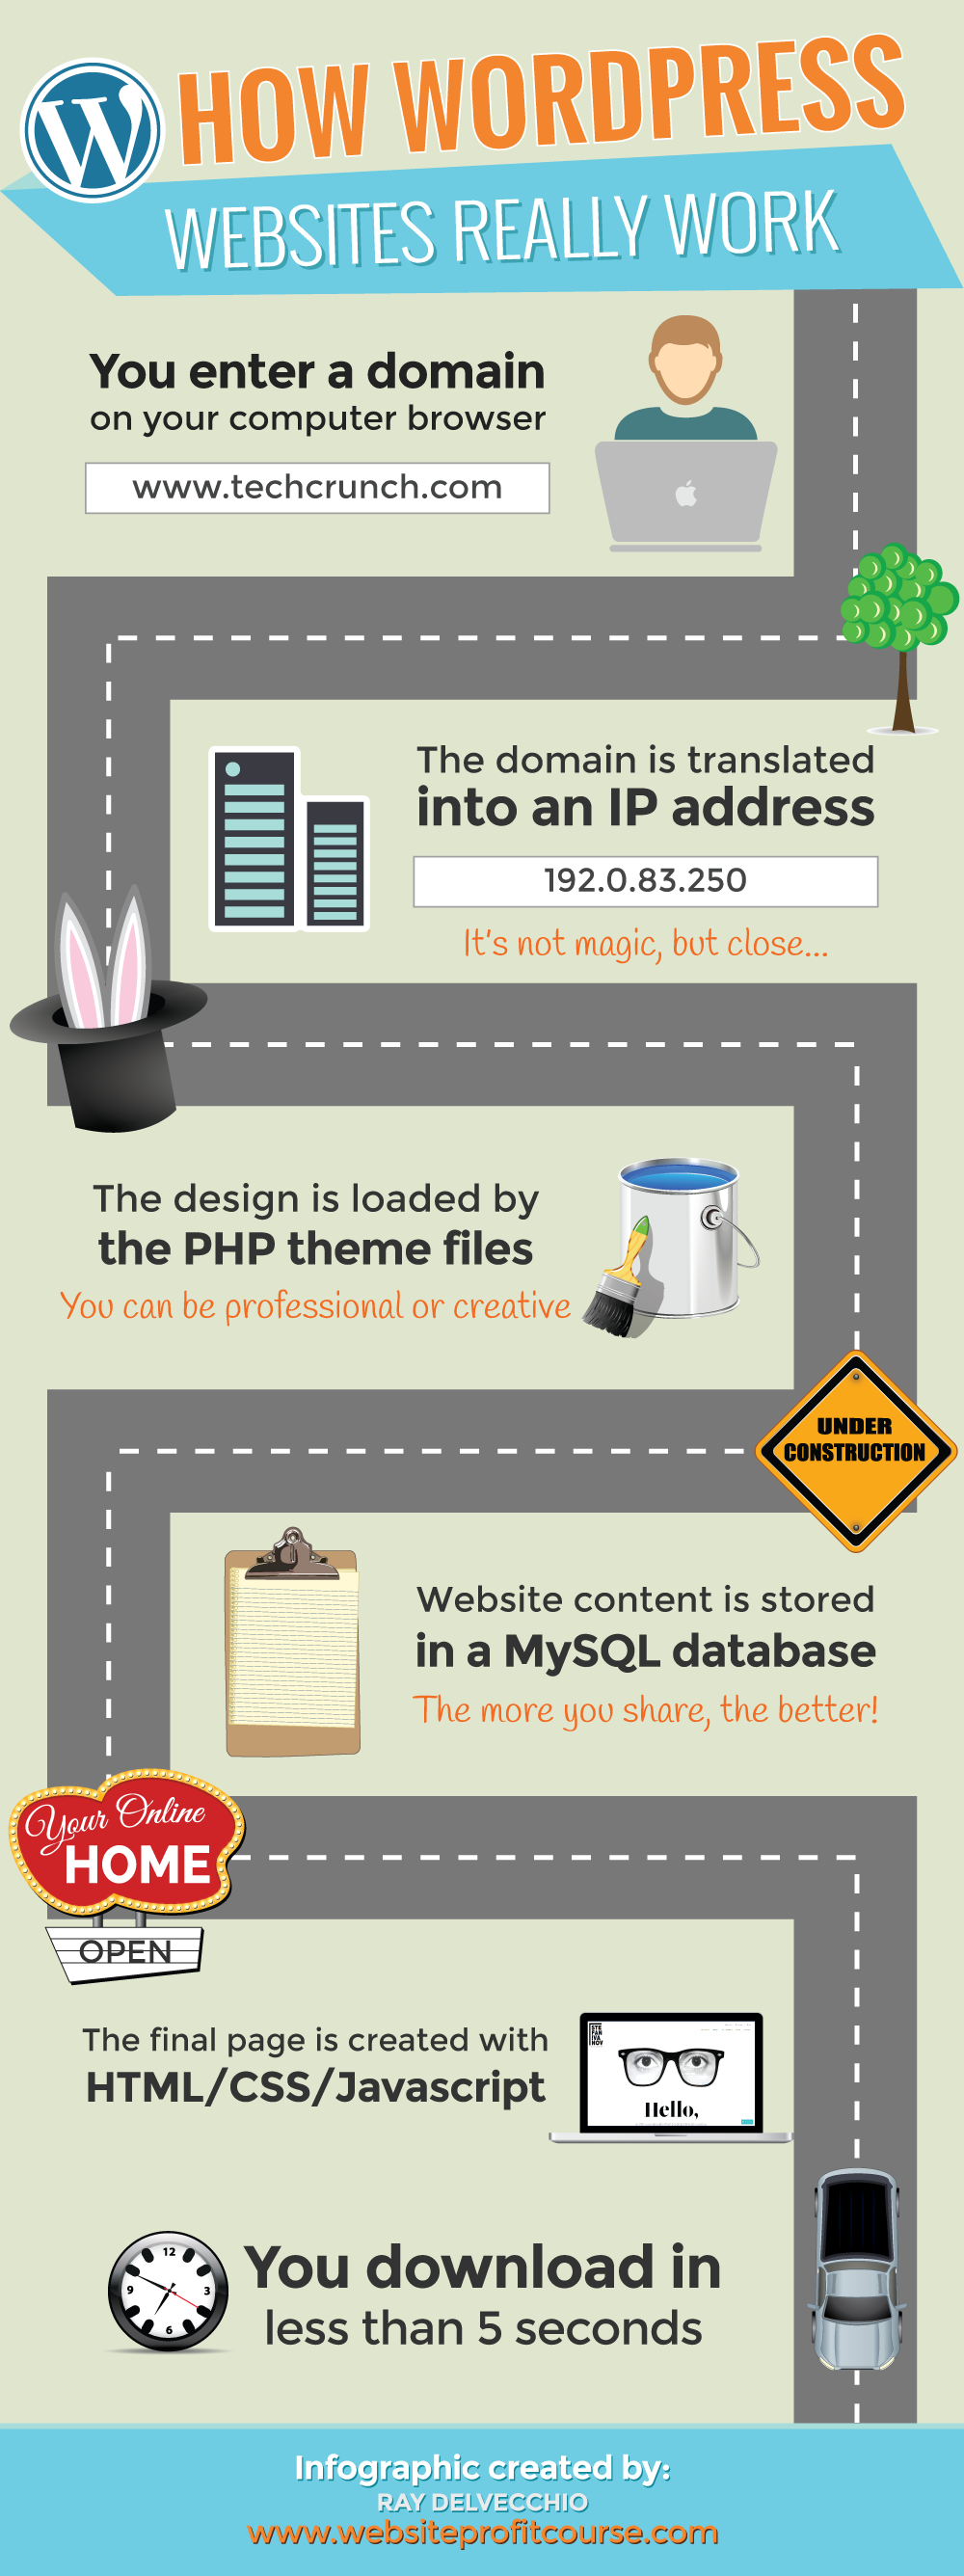 How WordPress Really Works Infographic